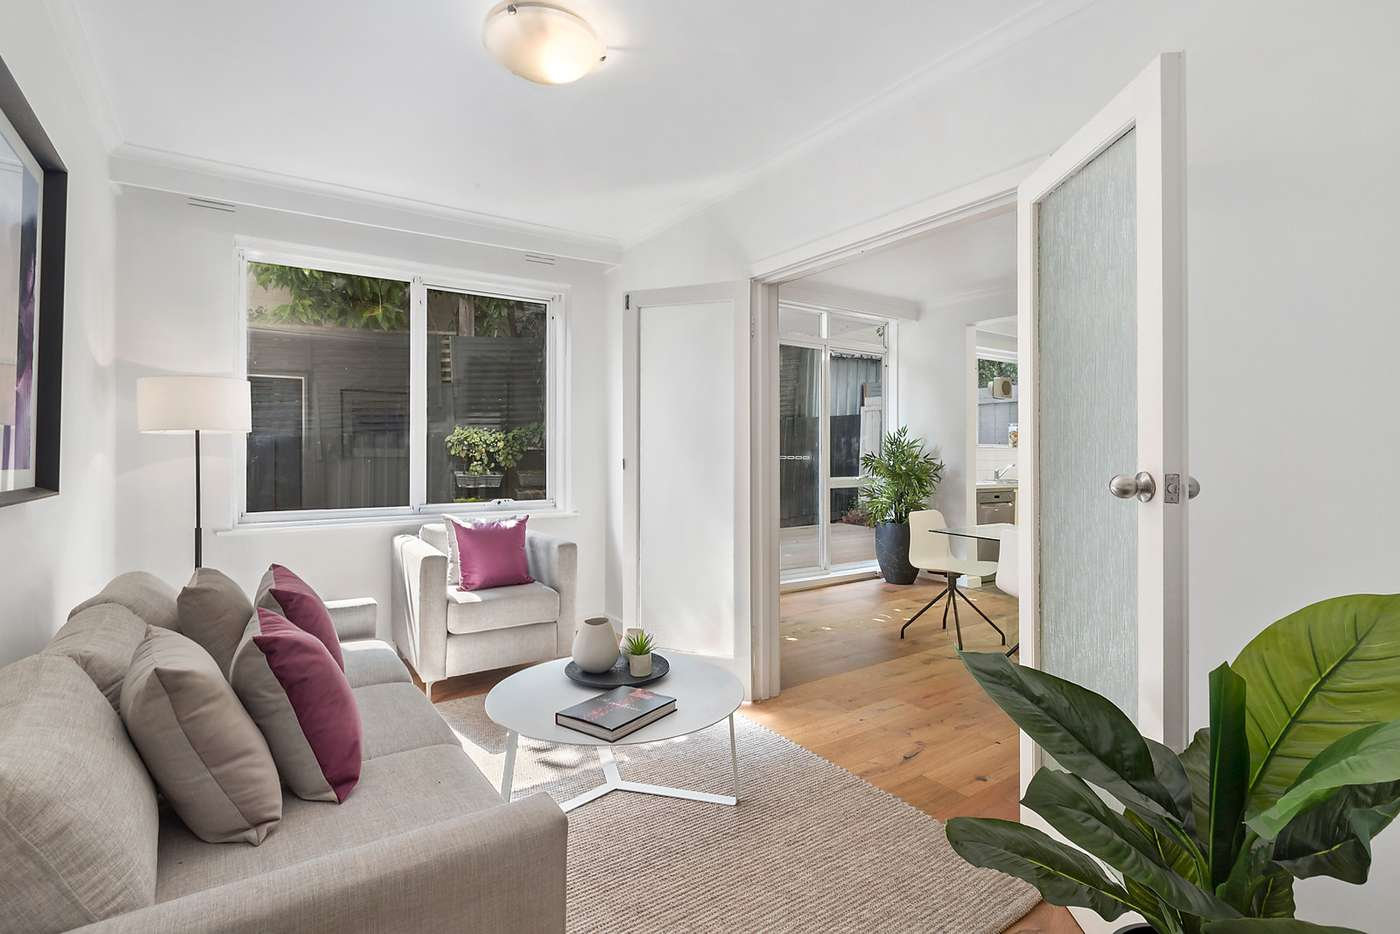 Sixth view of Homely apartment listing, 1/12 Osborne Avenue, Glen Iris VIC 3146